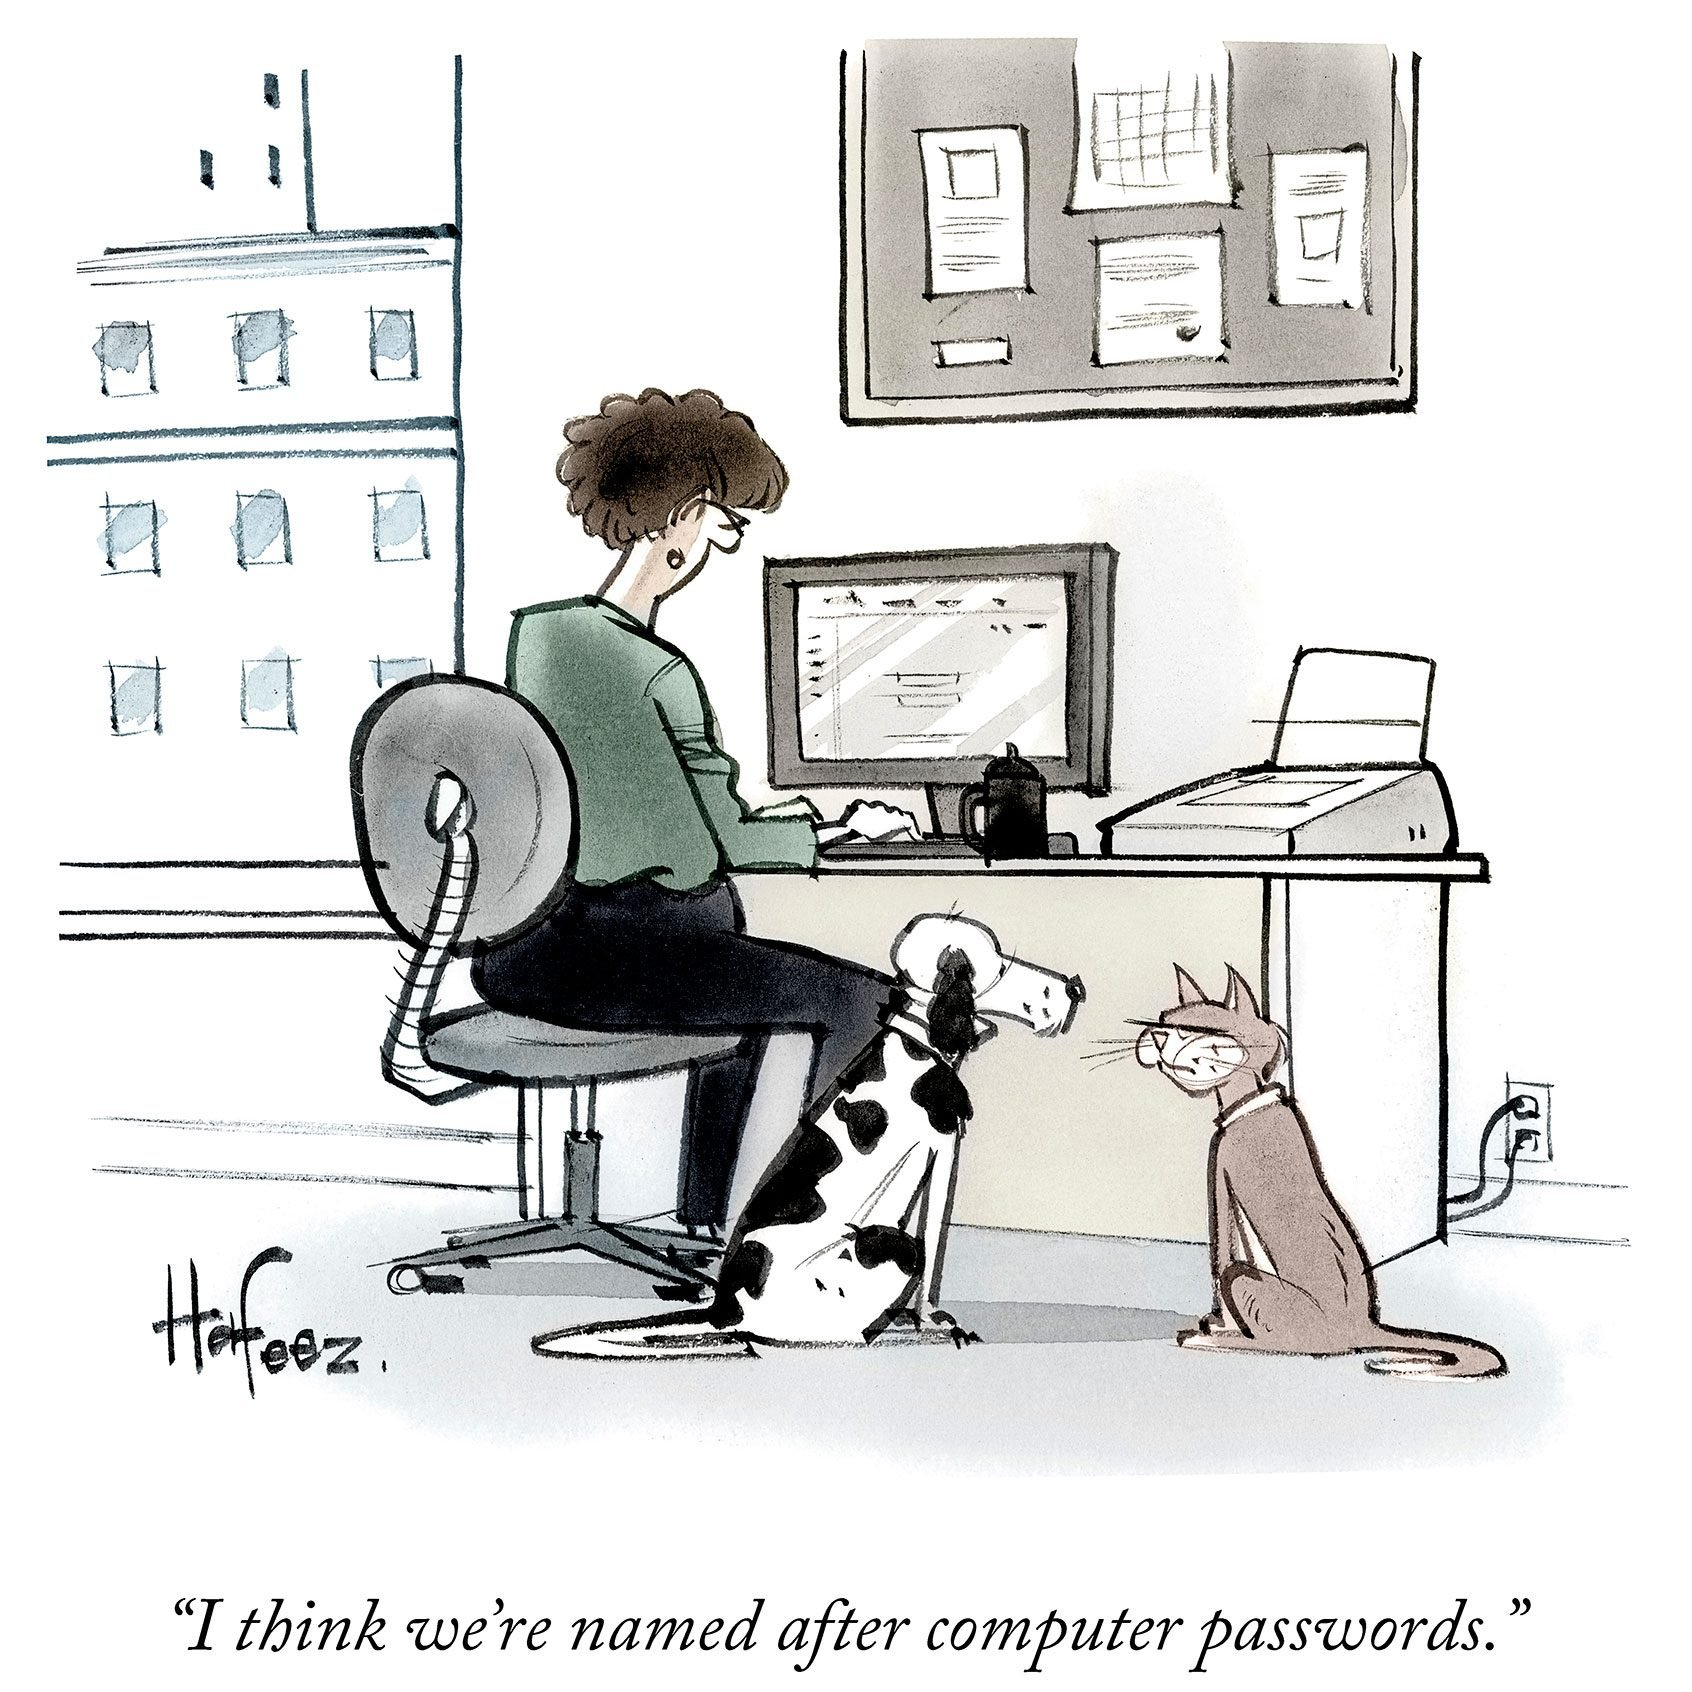 dog and cat think they're named after passwords cartoon